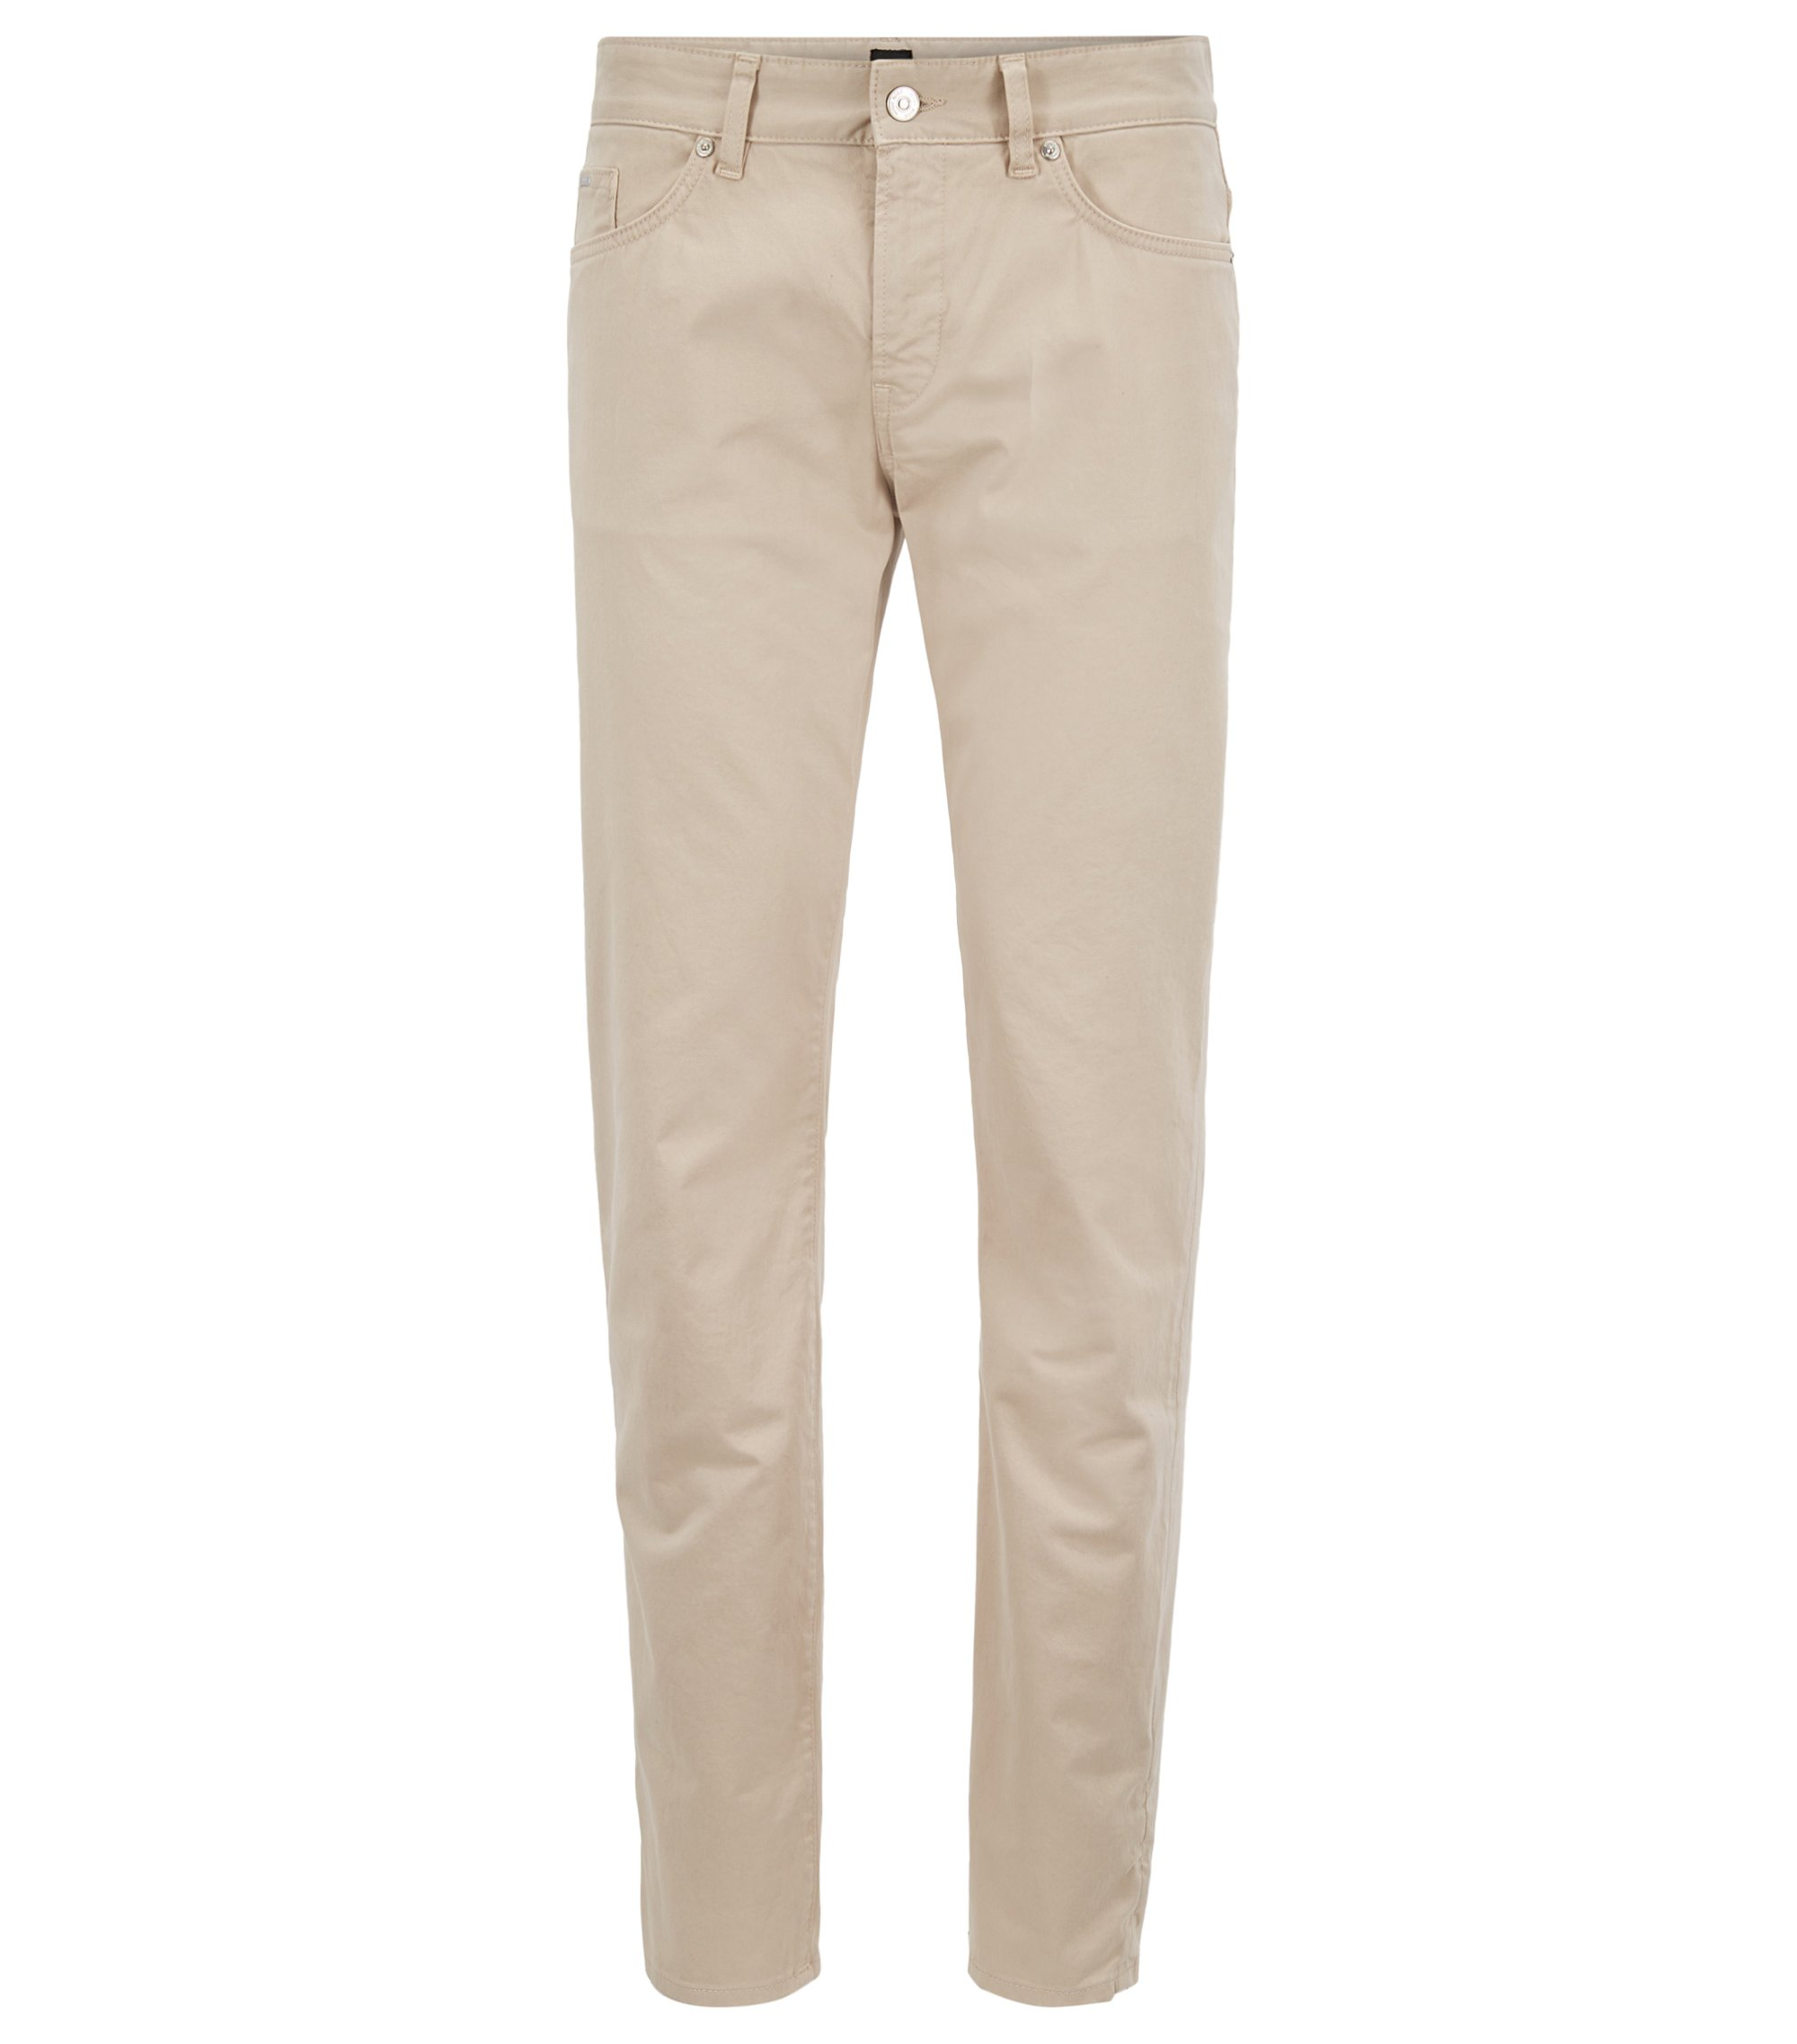 Jean Slim Fit en satin stretch à la finition brossée Diamond Brushed, Beige clair